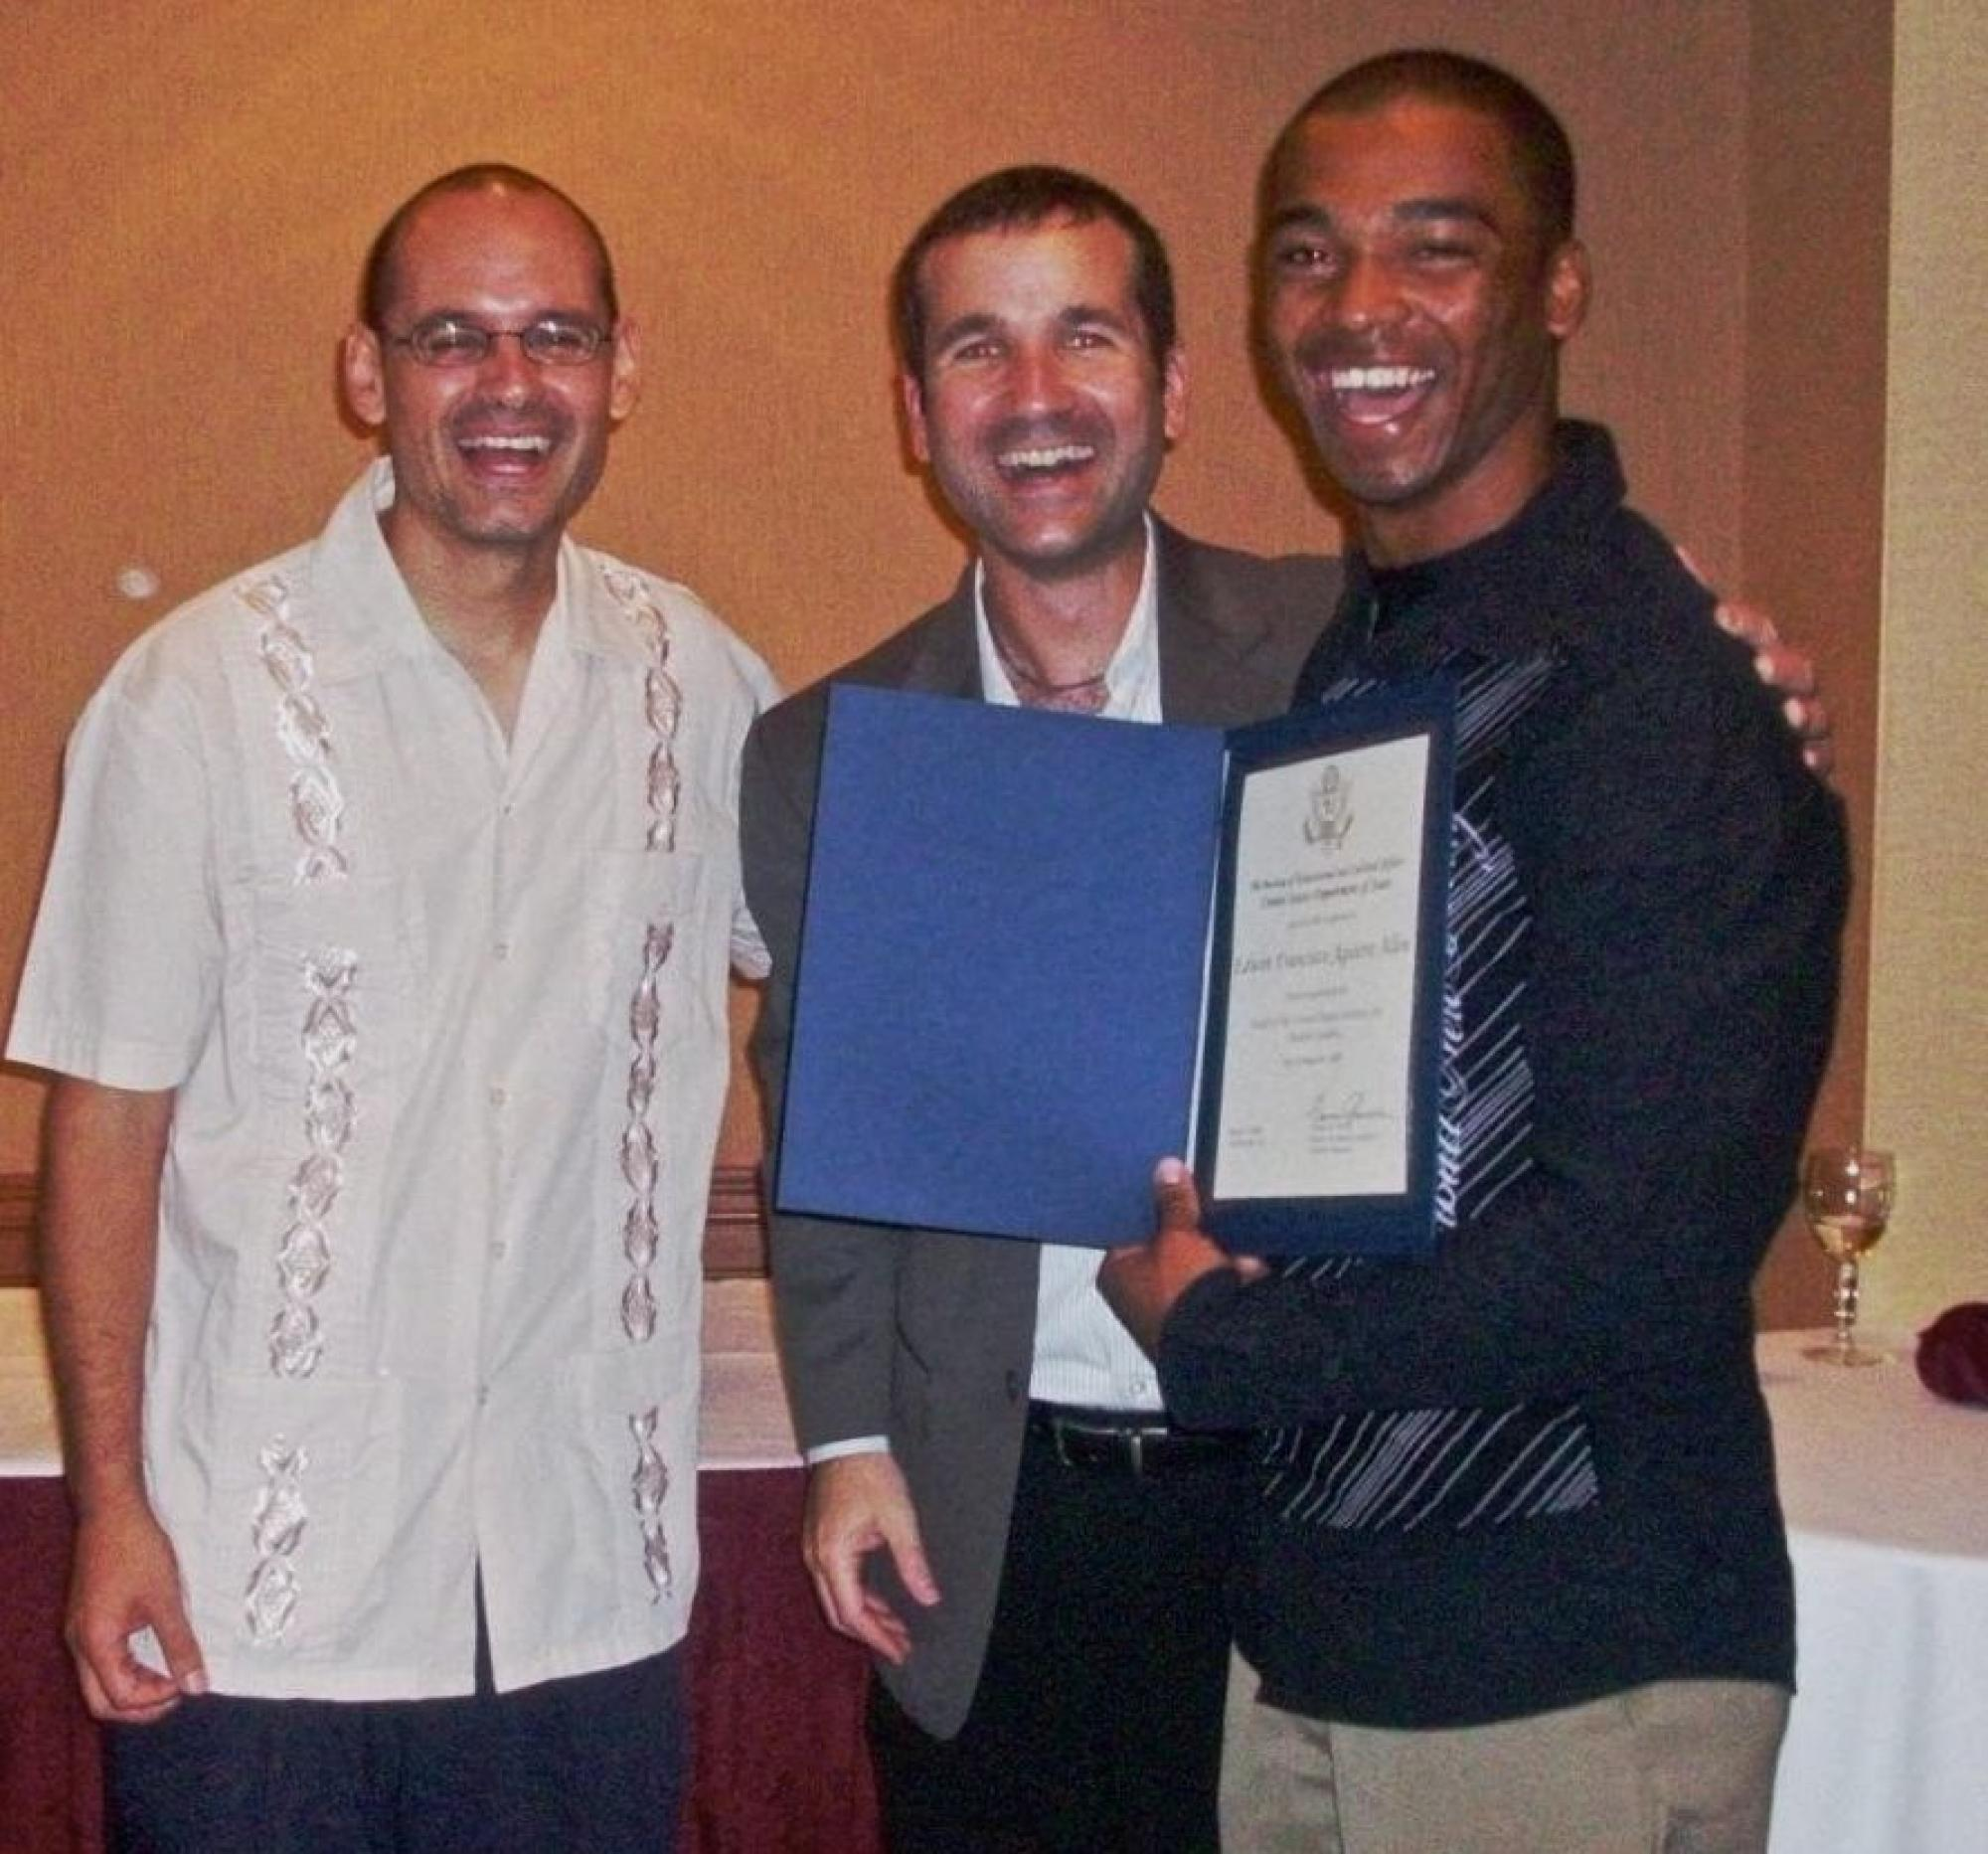 Edwin Francisco Agurre Allen, who is from Nicaragua, completed the UA program in 2008.